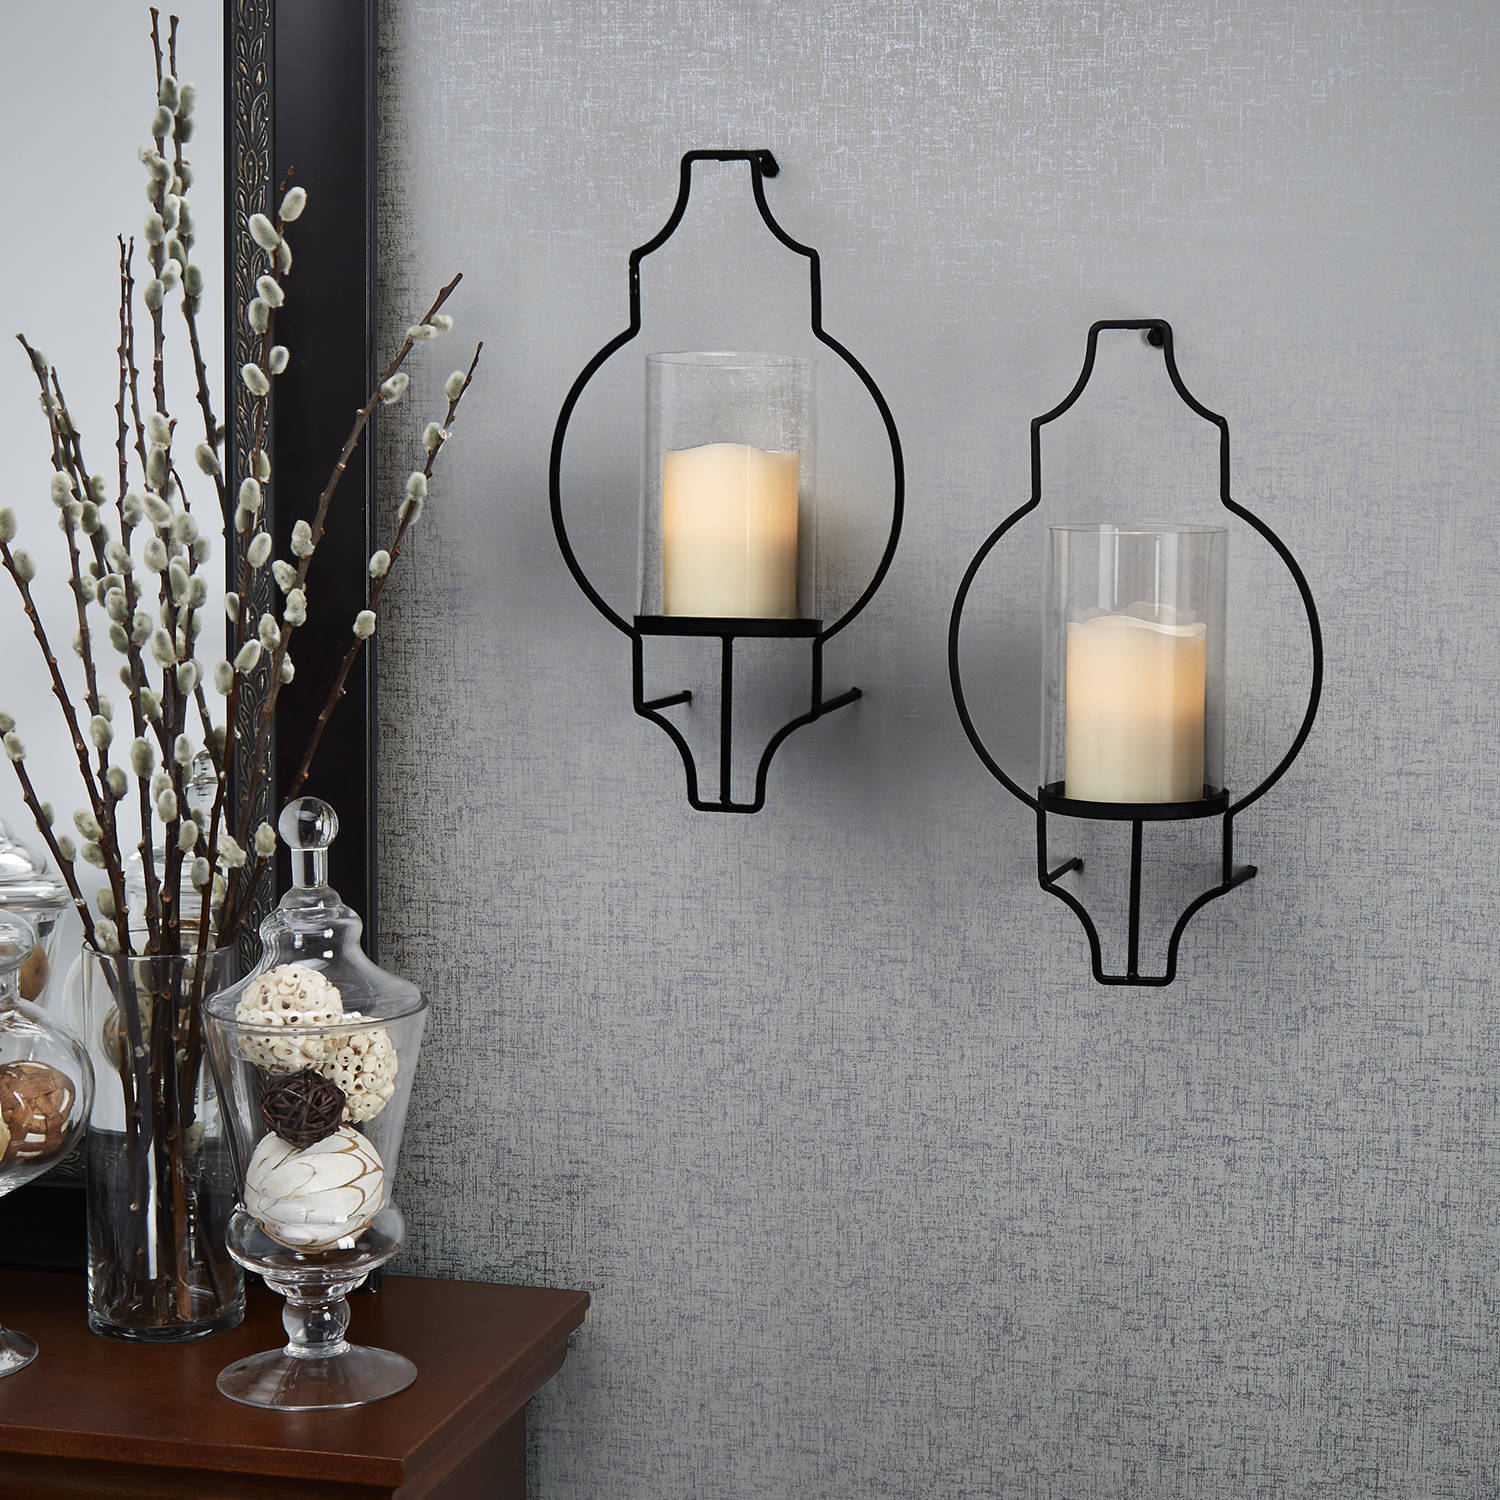 Wall Sconces Candles : Lights.com Flameless Candles Pillar Candles Hurricane Glass Flameless Candle Wall Sconce ...